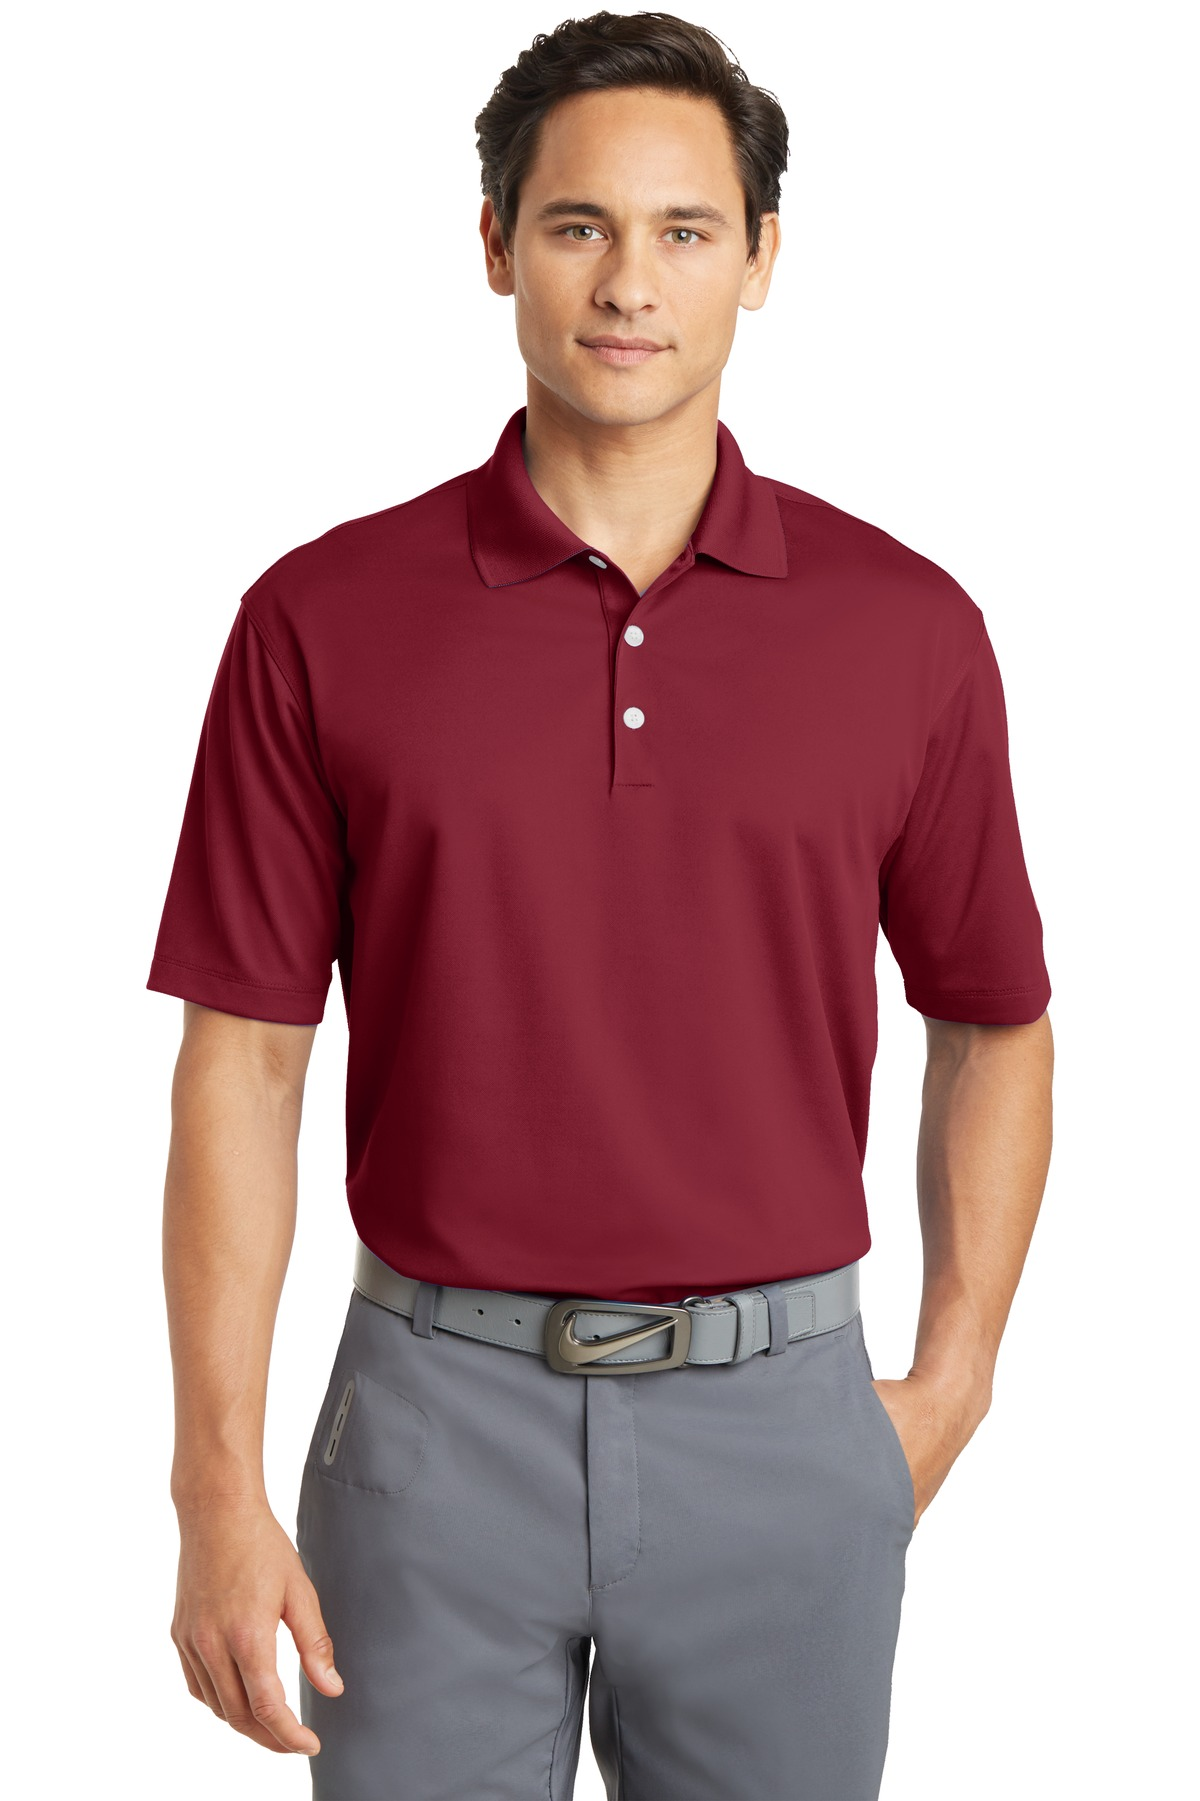 Custom Embroidered Mens Apparel Logo Shirts Direct